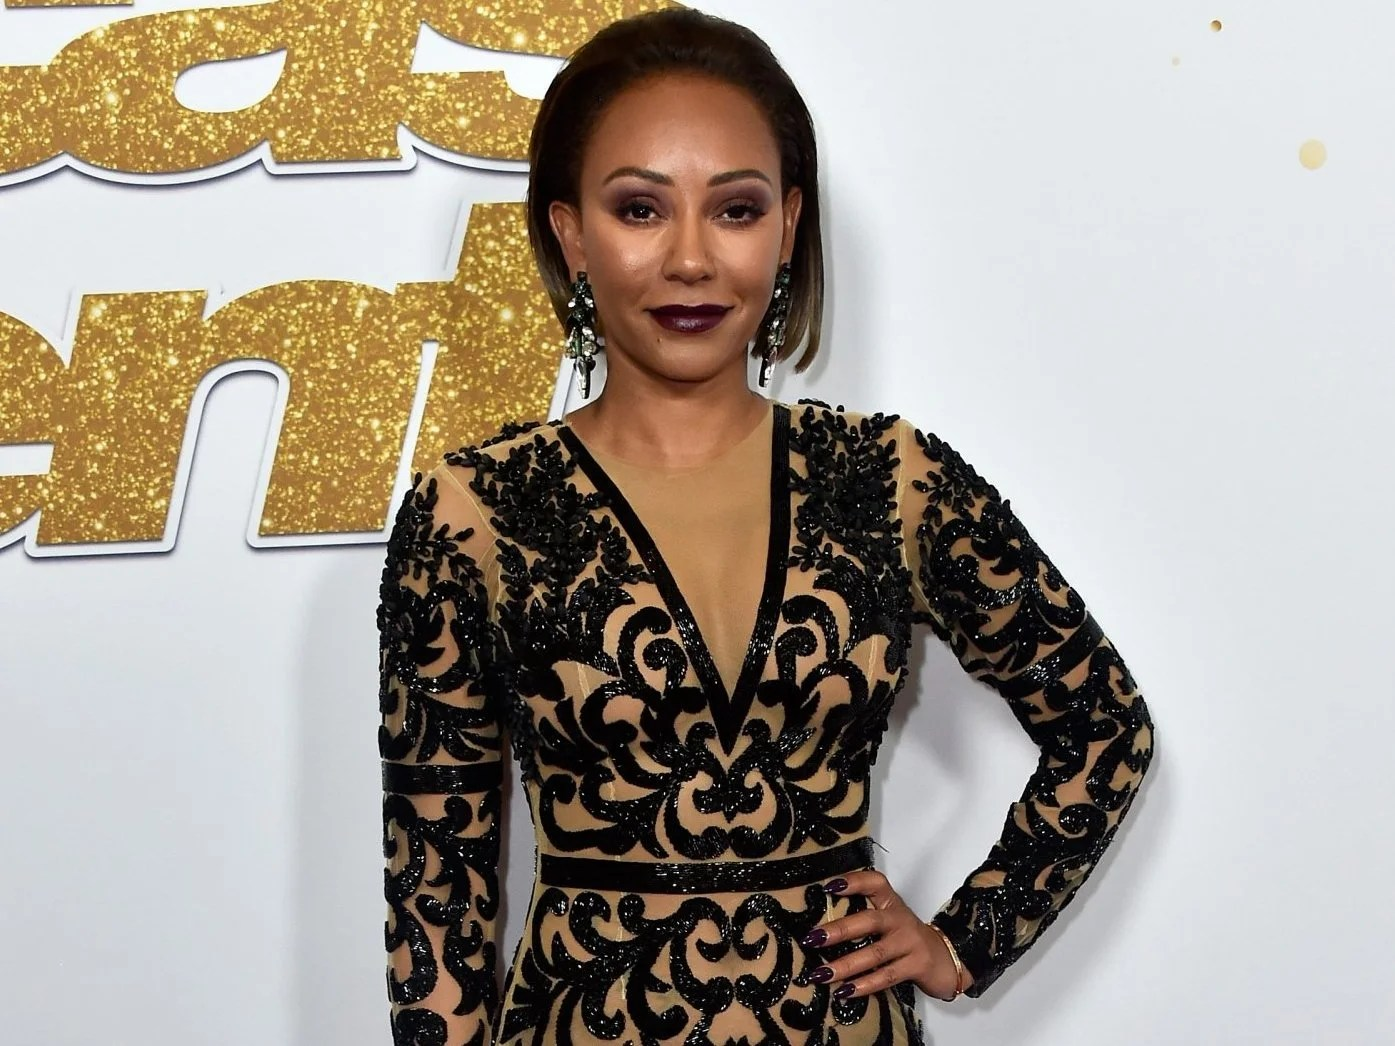 Spice Girls star Mel B to enter rehab after PTSD diagnosis   The     Getty  Former Spice Girls member Mel B